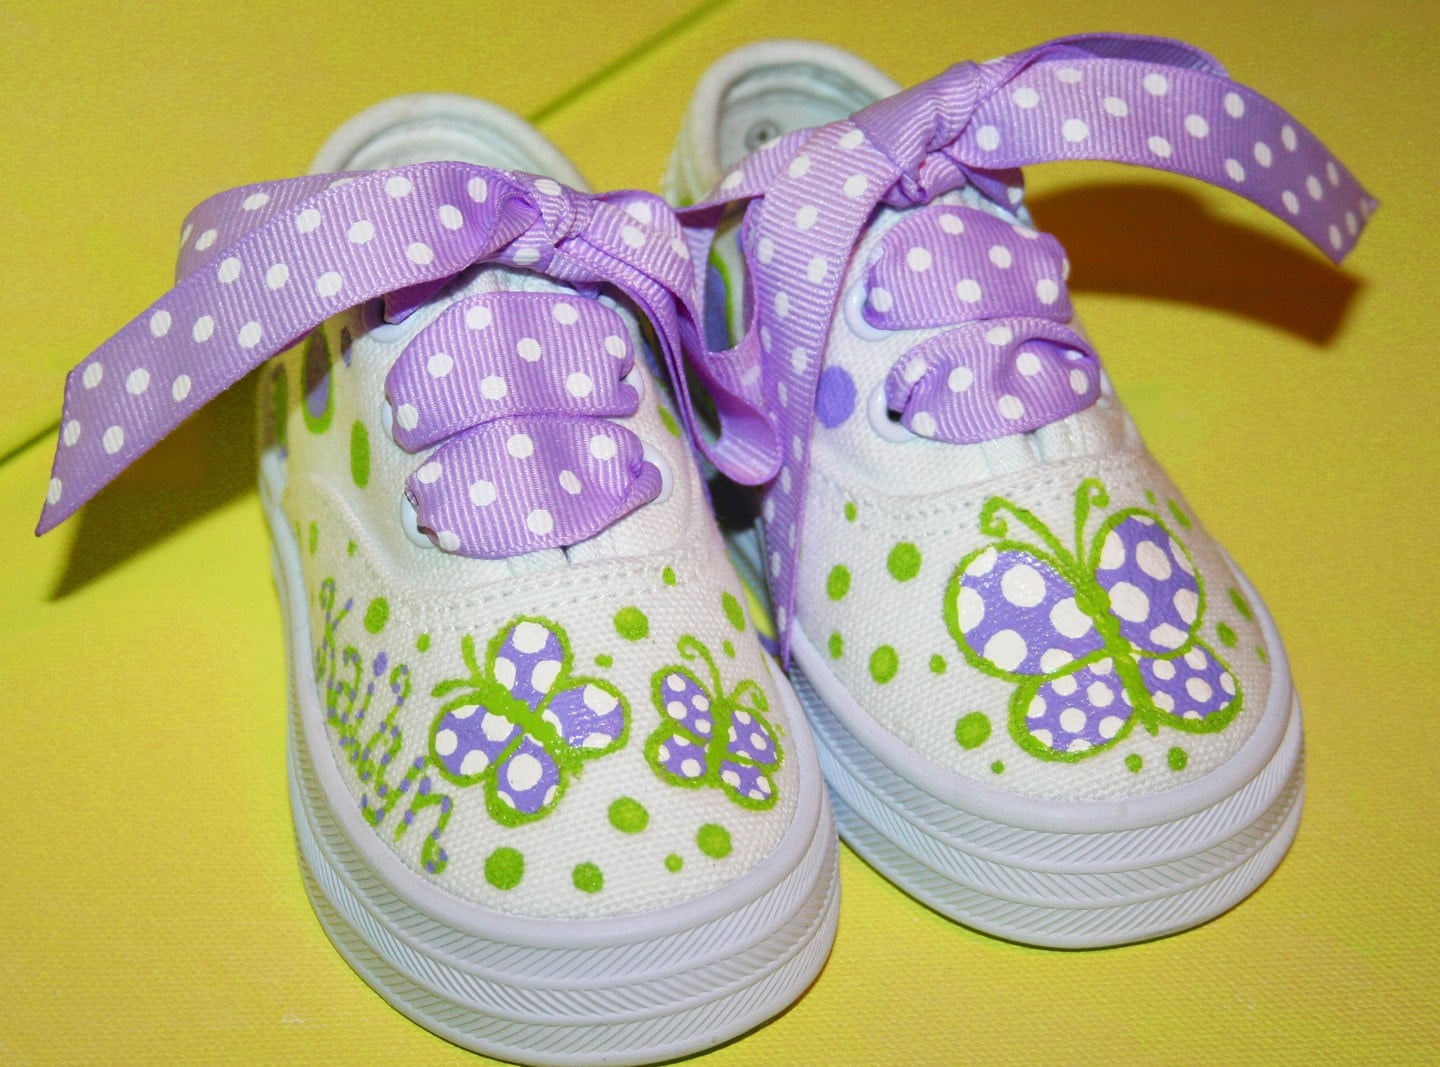 s custom painted tennis shoes lavender and green